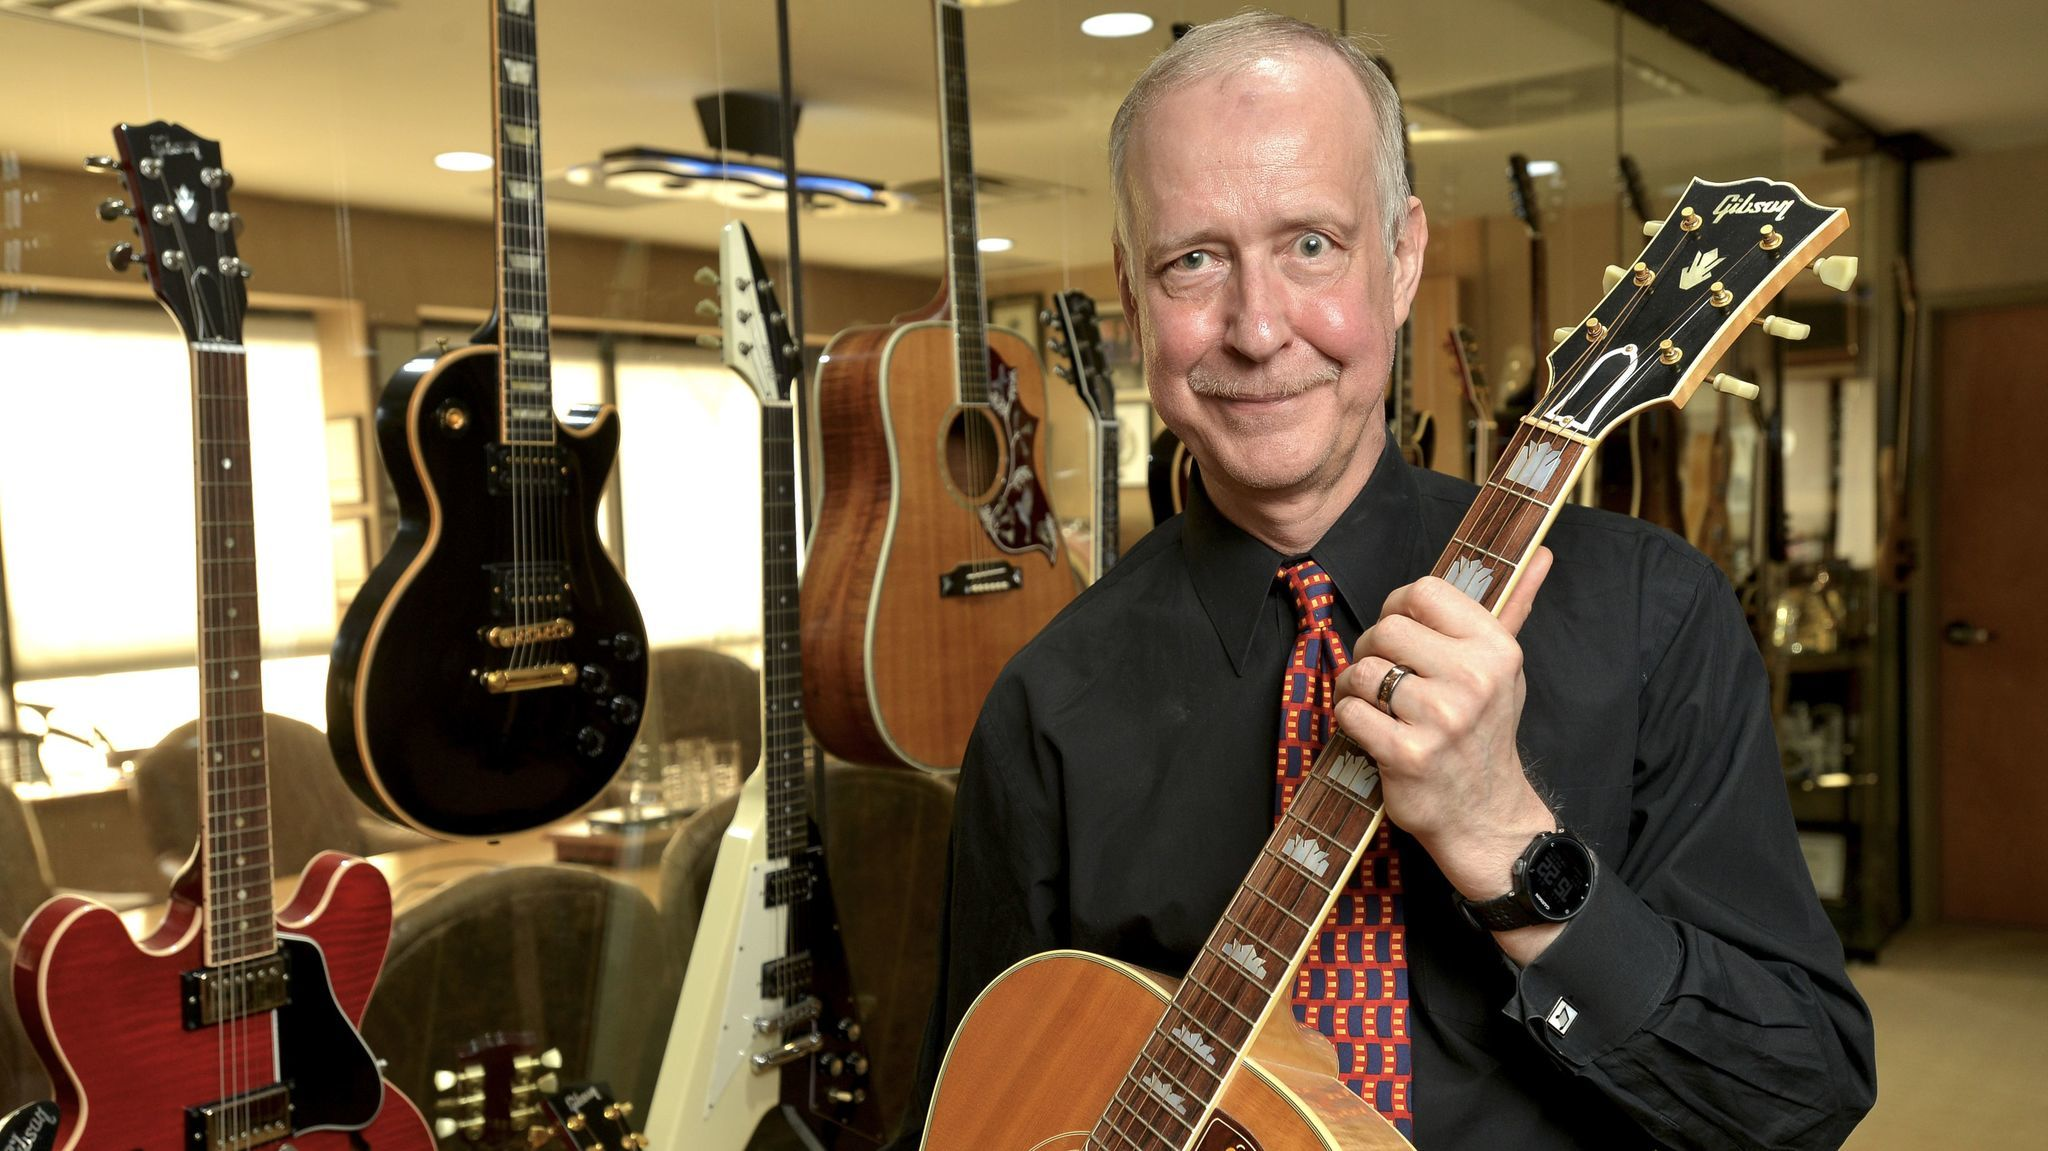 Gibson Brands chief Henry Juszkiewicz is working to make the guitar company into 'the Nike of the music world'